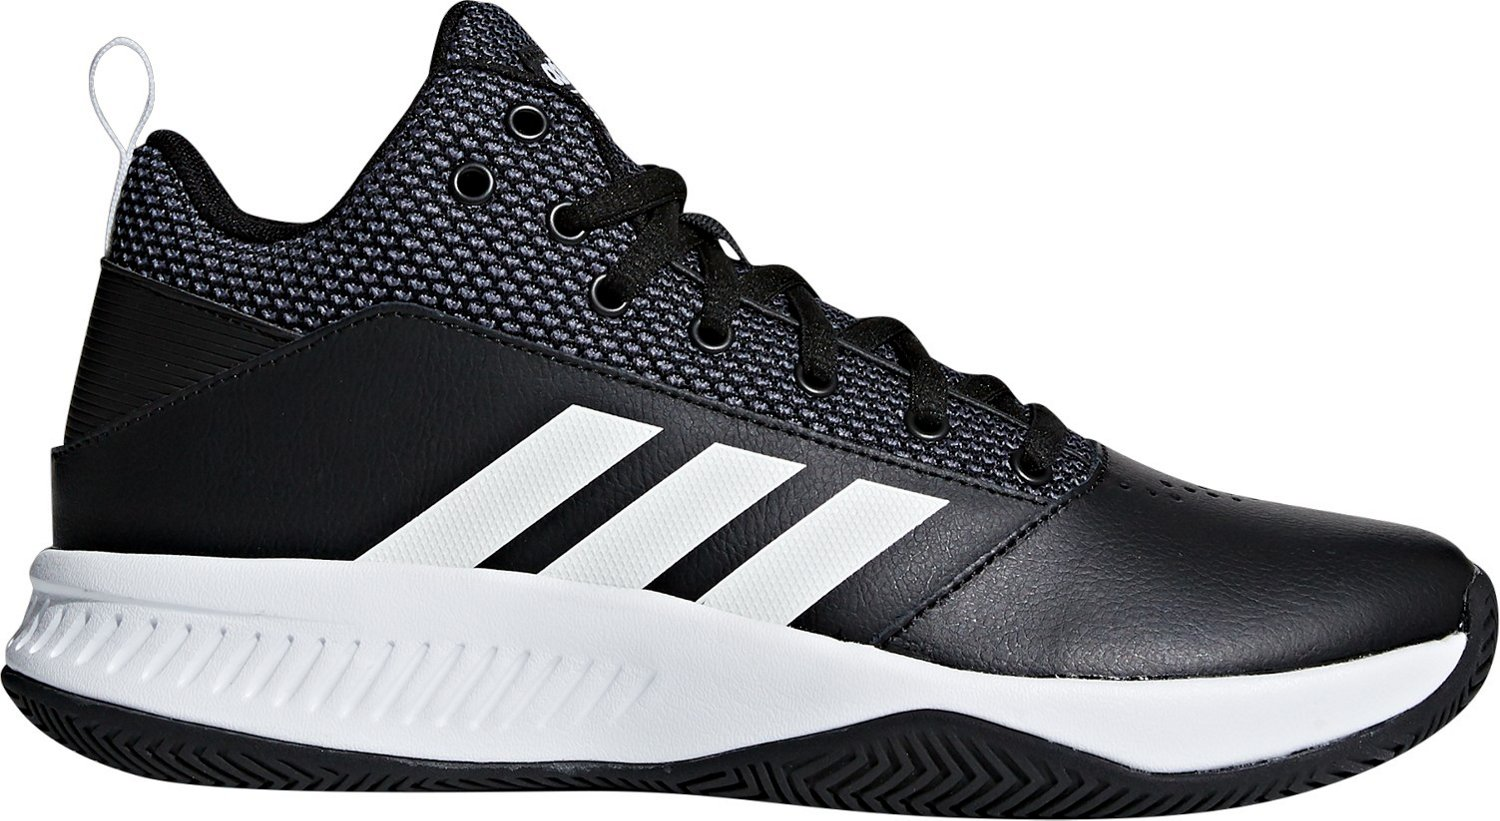 1dd66d69b55c Display product reviews for adidas Men s Cloudfoam Ilation 2.0 Basketball  Shoes